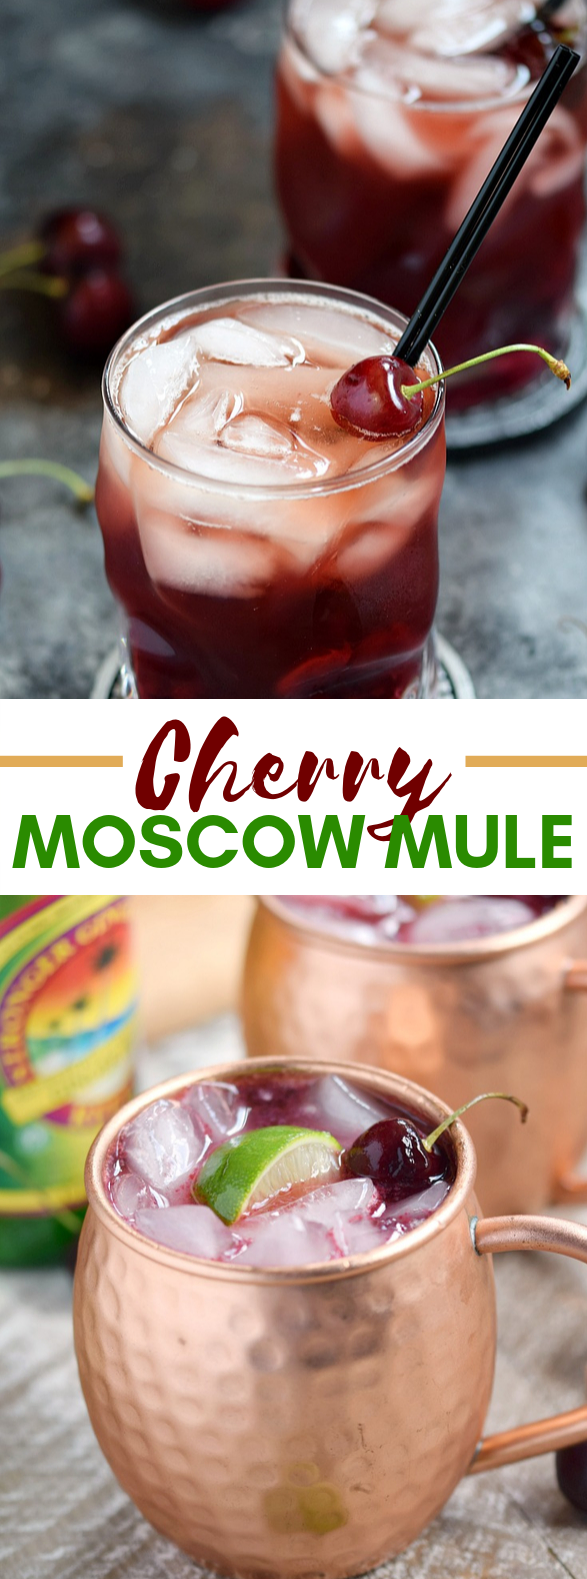 CHERRY MOSCOW MULE #drinks #summerdrink